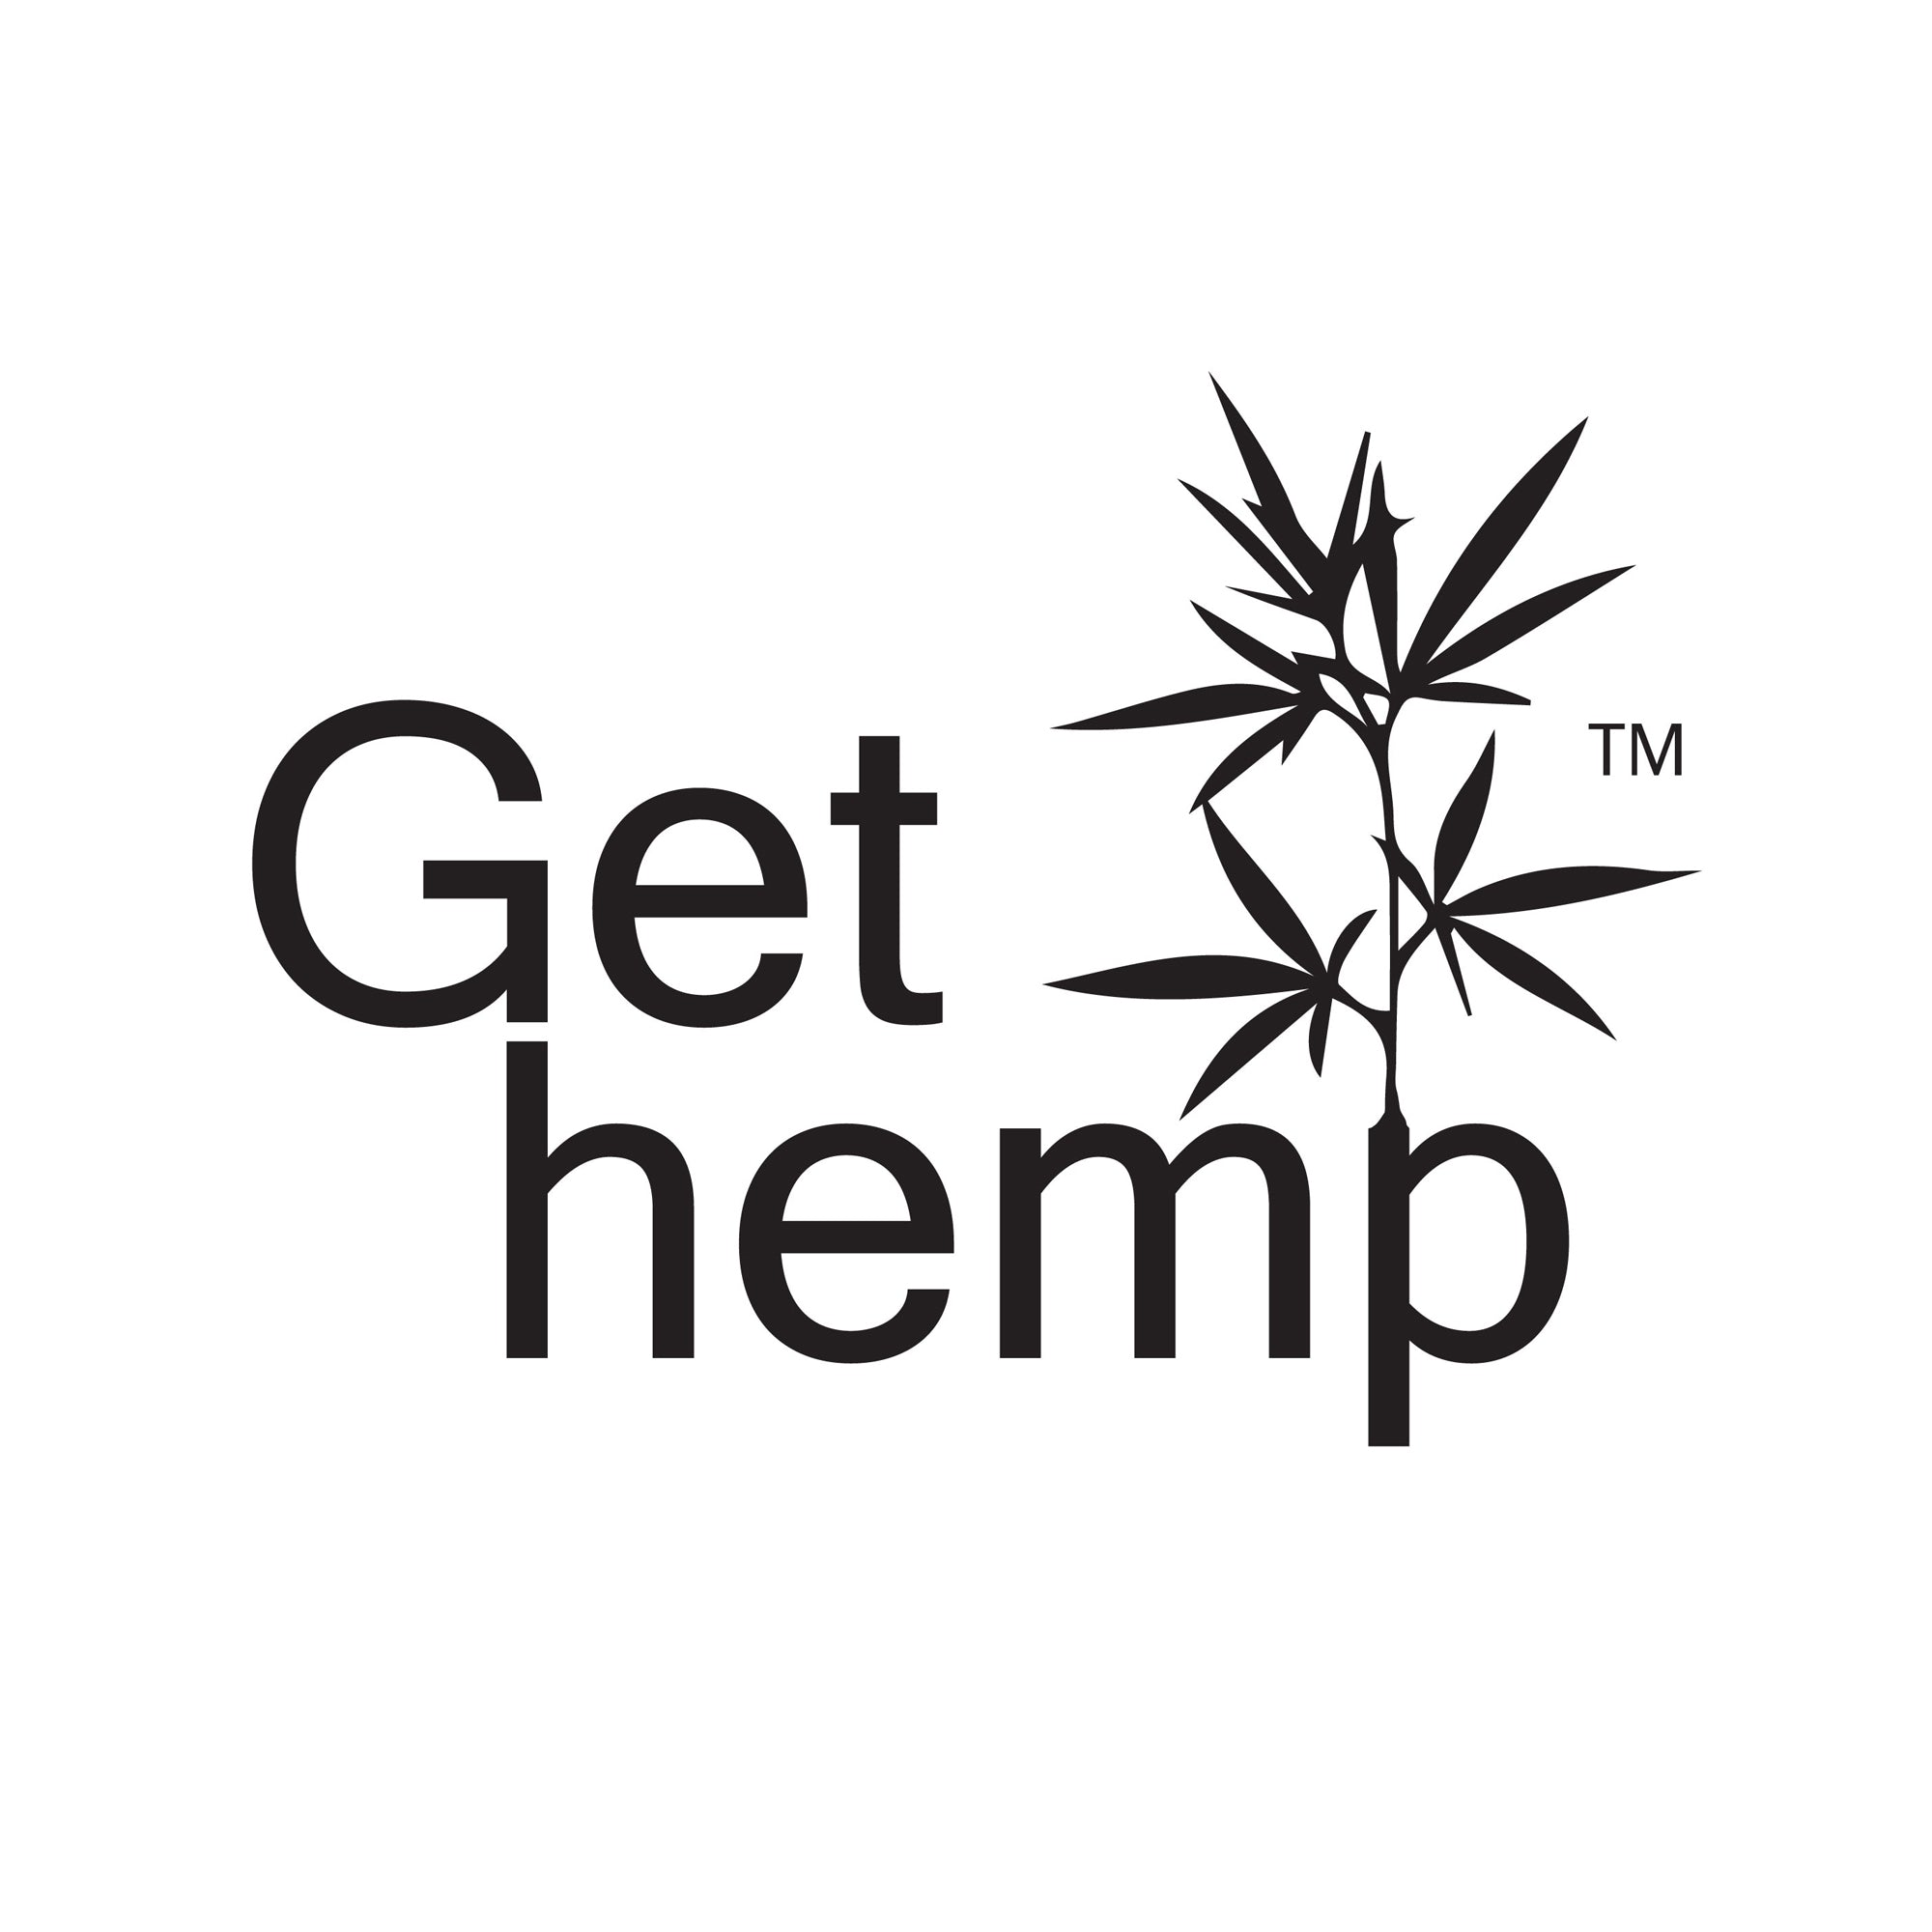 Get hemp vape CBD oil flowers products